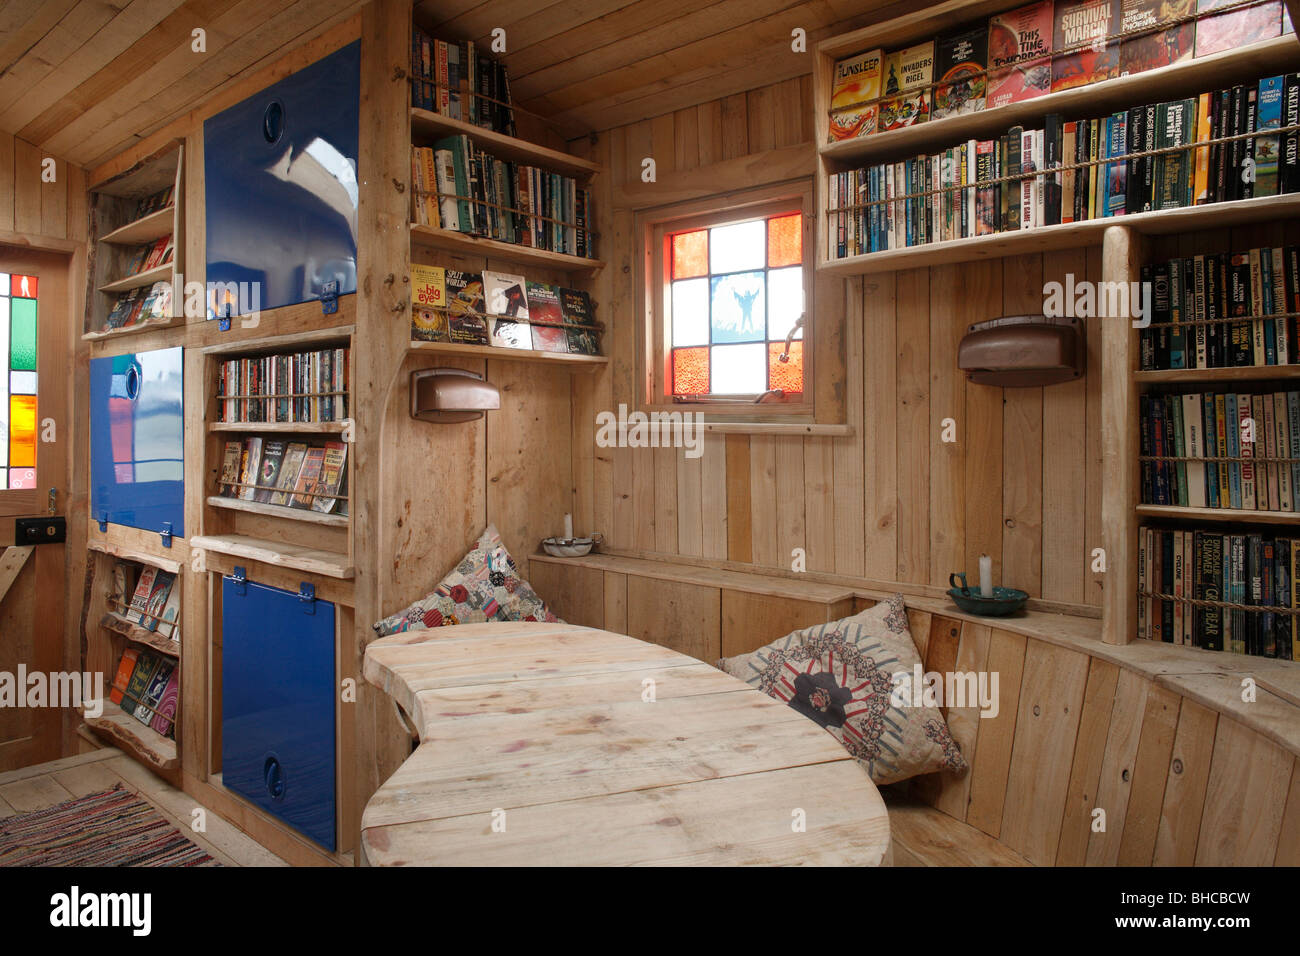 Heather and Ivan Morison's sci-fi library in a wooden trailer - Stock Image